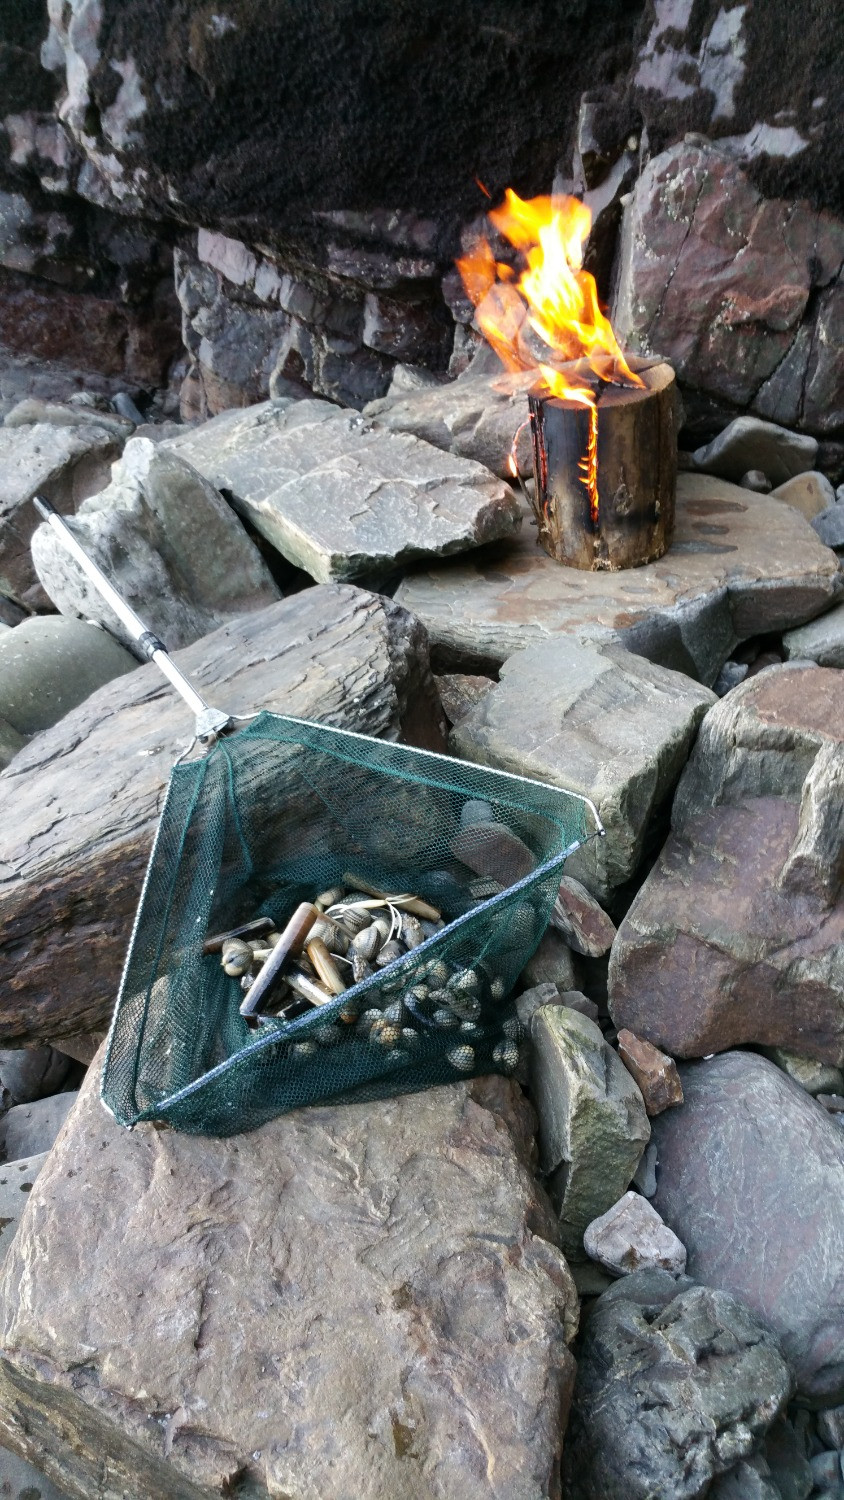 Swedish campfire log and our foraged items